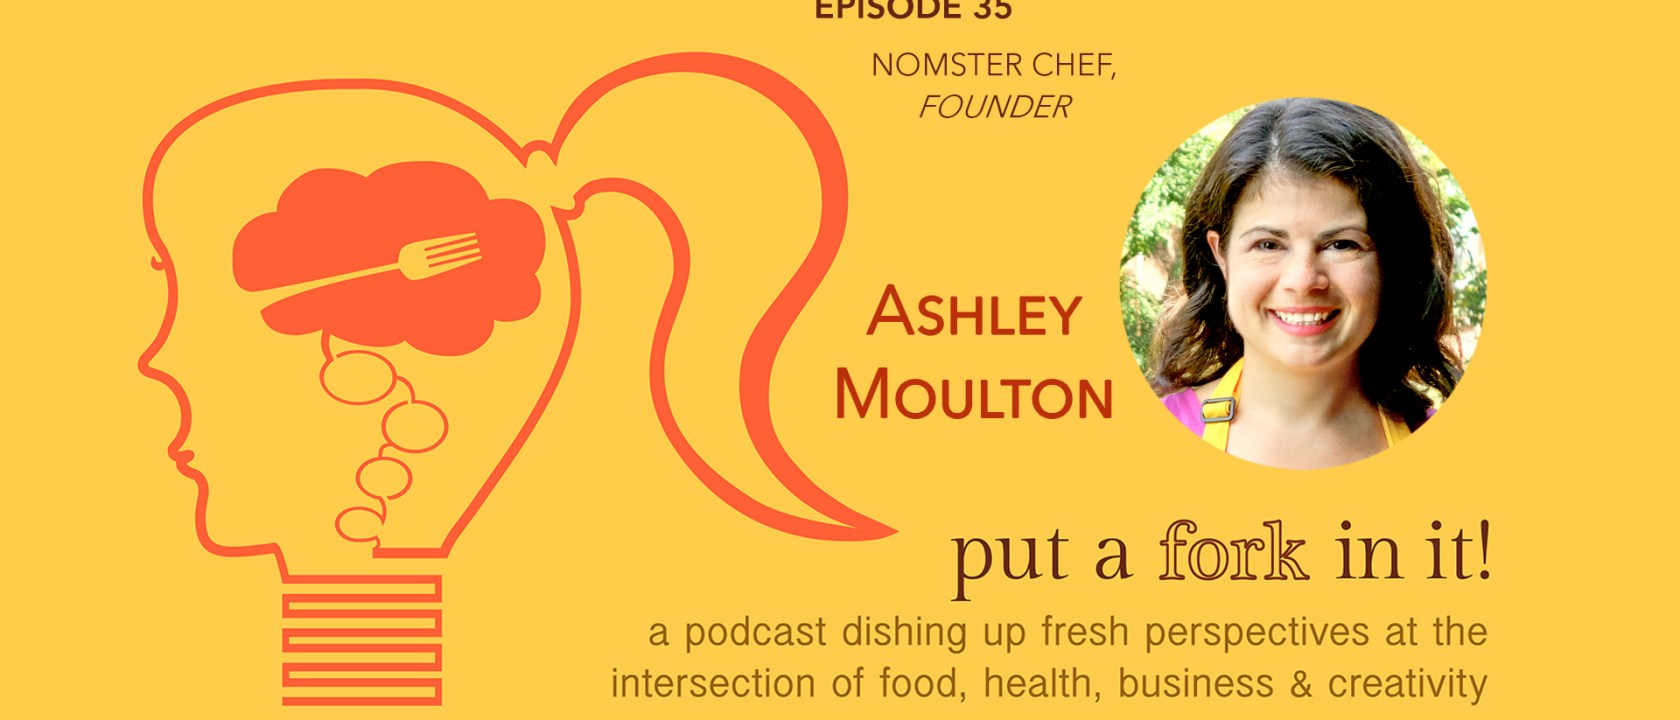 ashley moulton episode 35